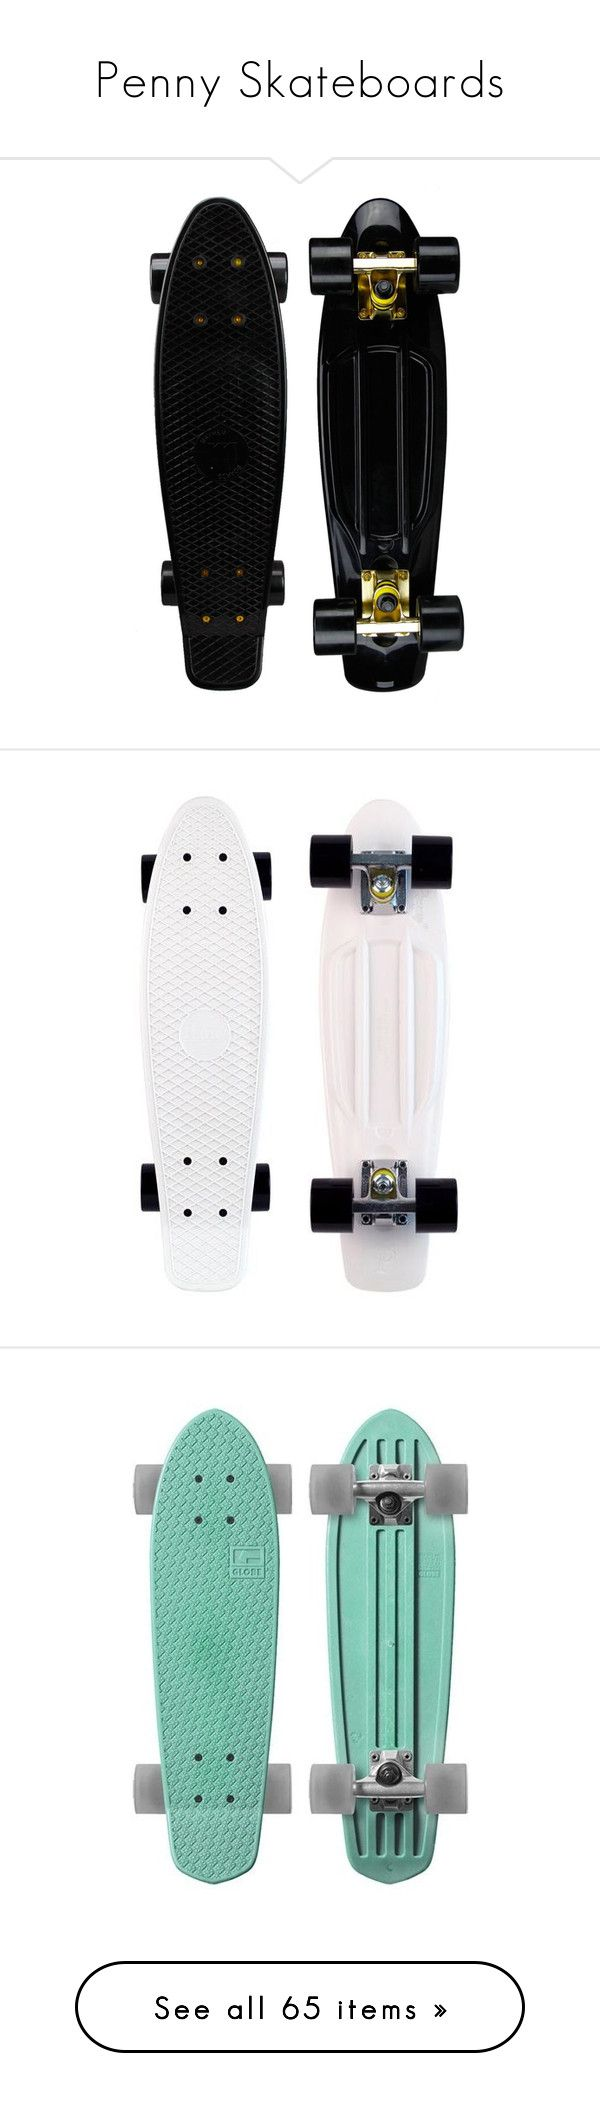 """Penny Skateboards"" by janettetang ❤ liked on Polyvore featuring fillers, skateboards, accessories, black, skate, misc, backgrounds, penny boards, other and skateboard"